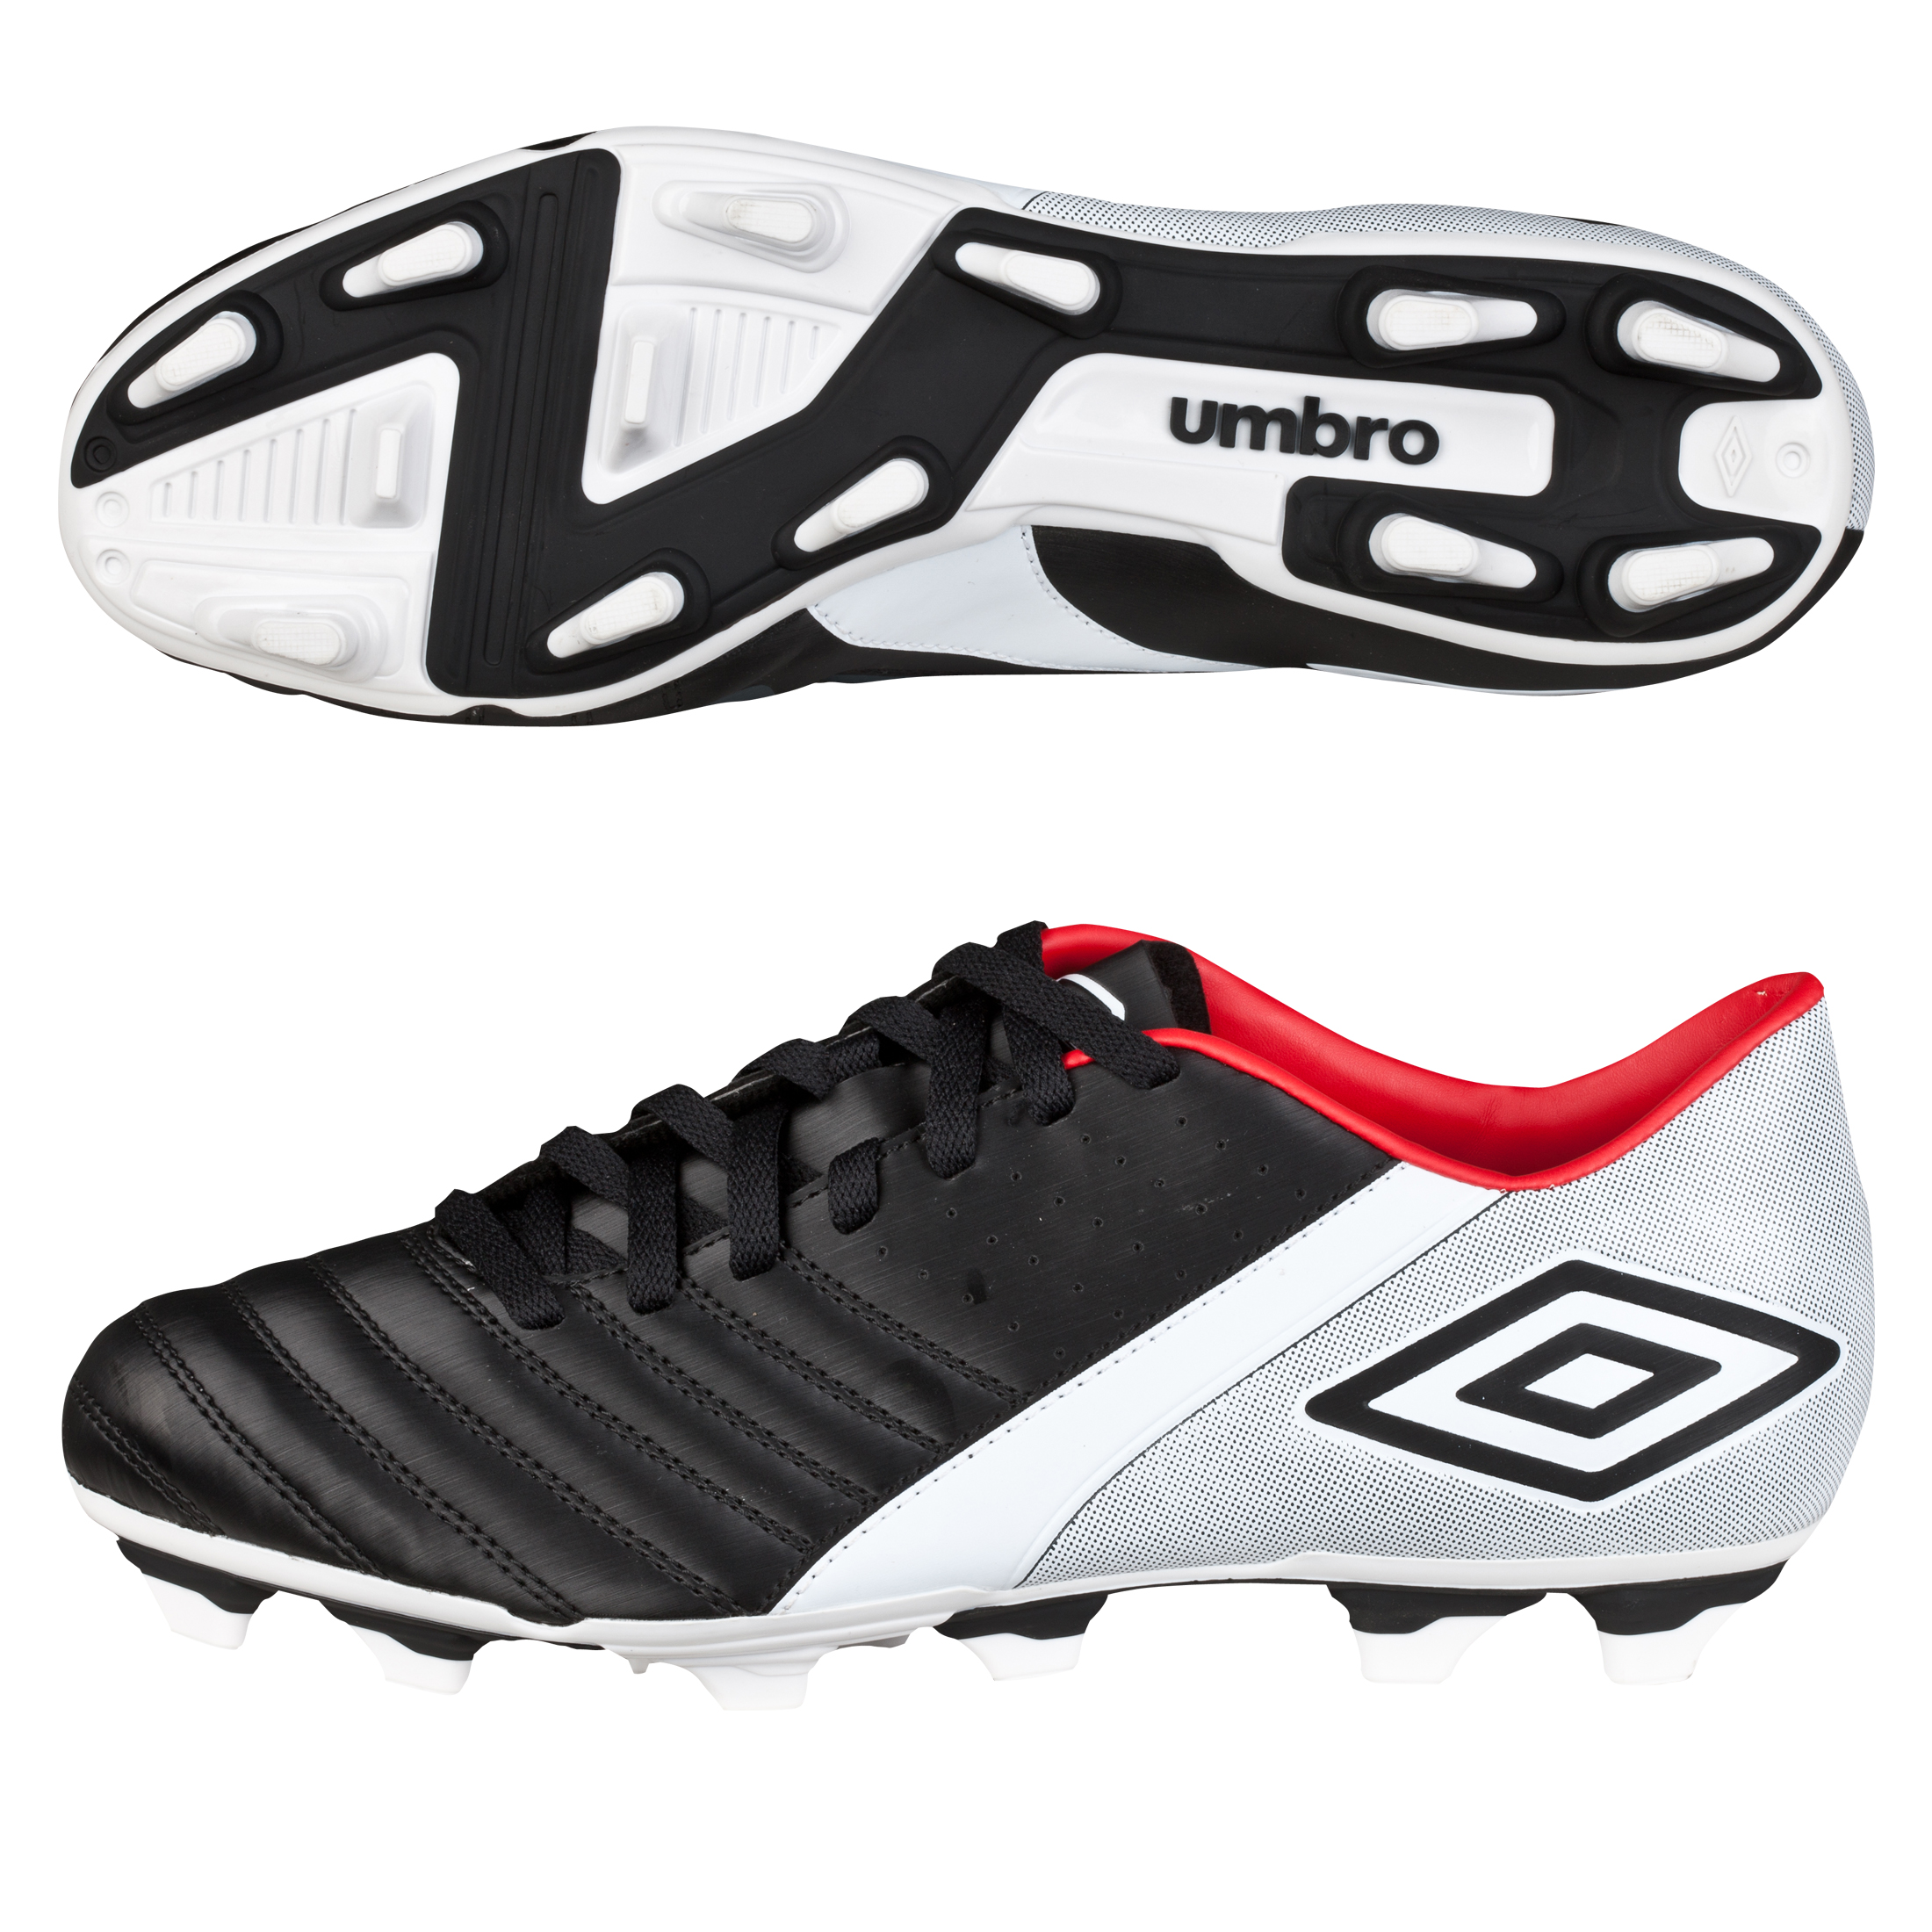 Umbro Extremis Firm Ground Football Boots - Black/White/True Red